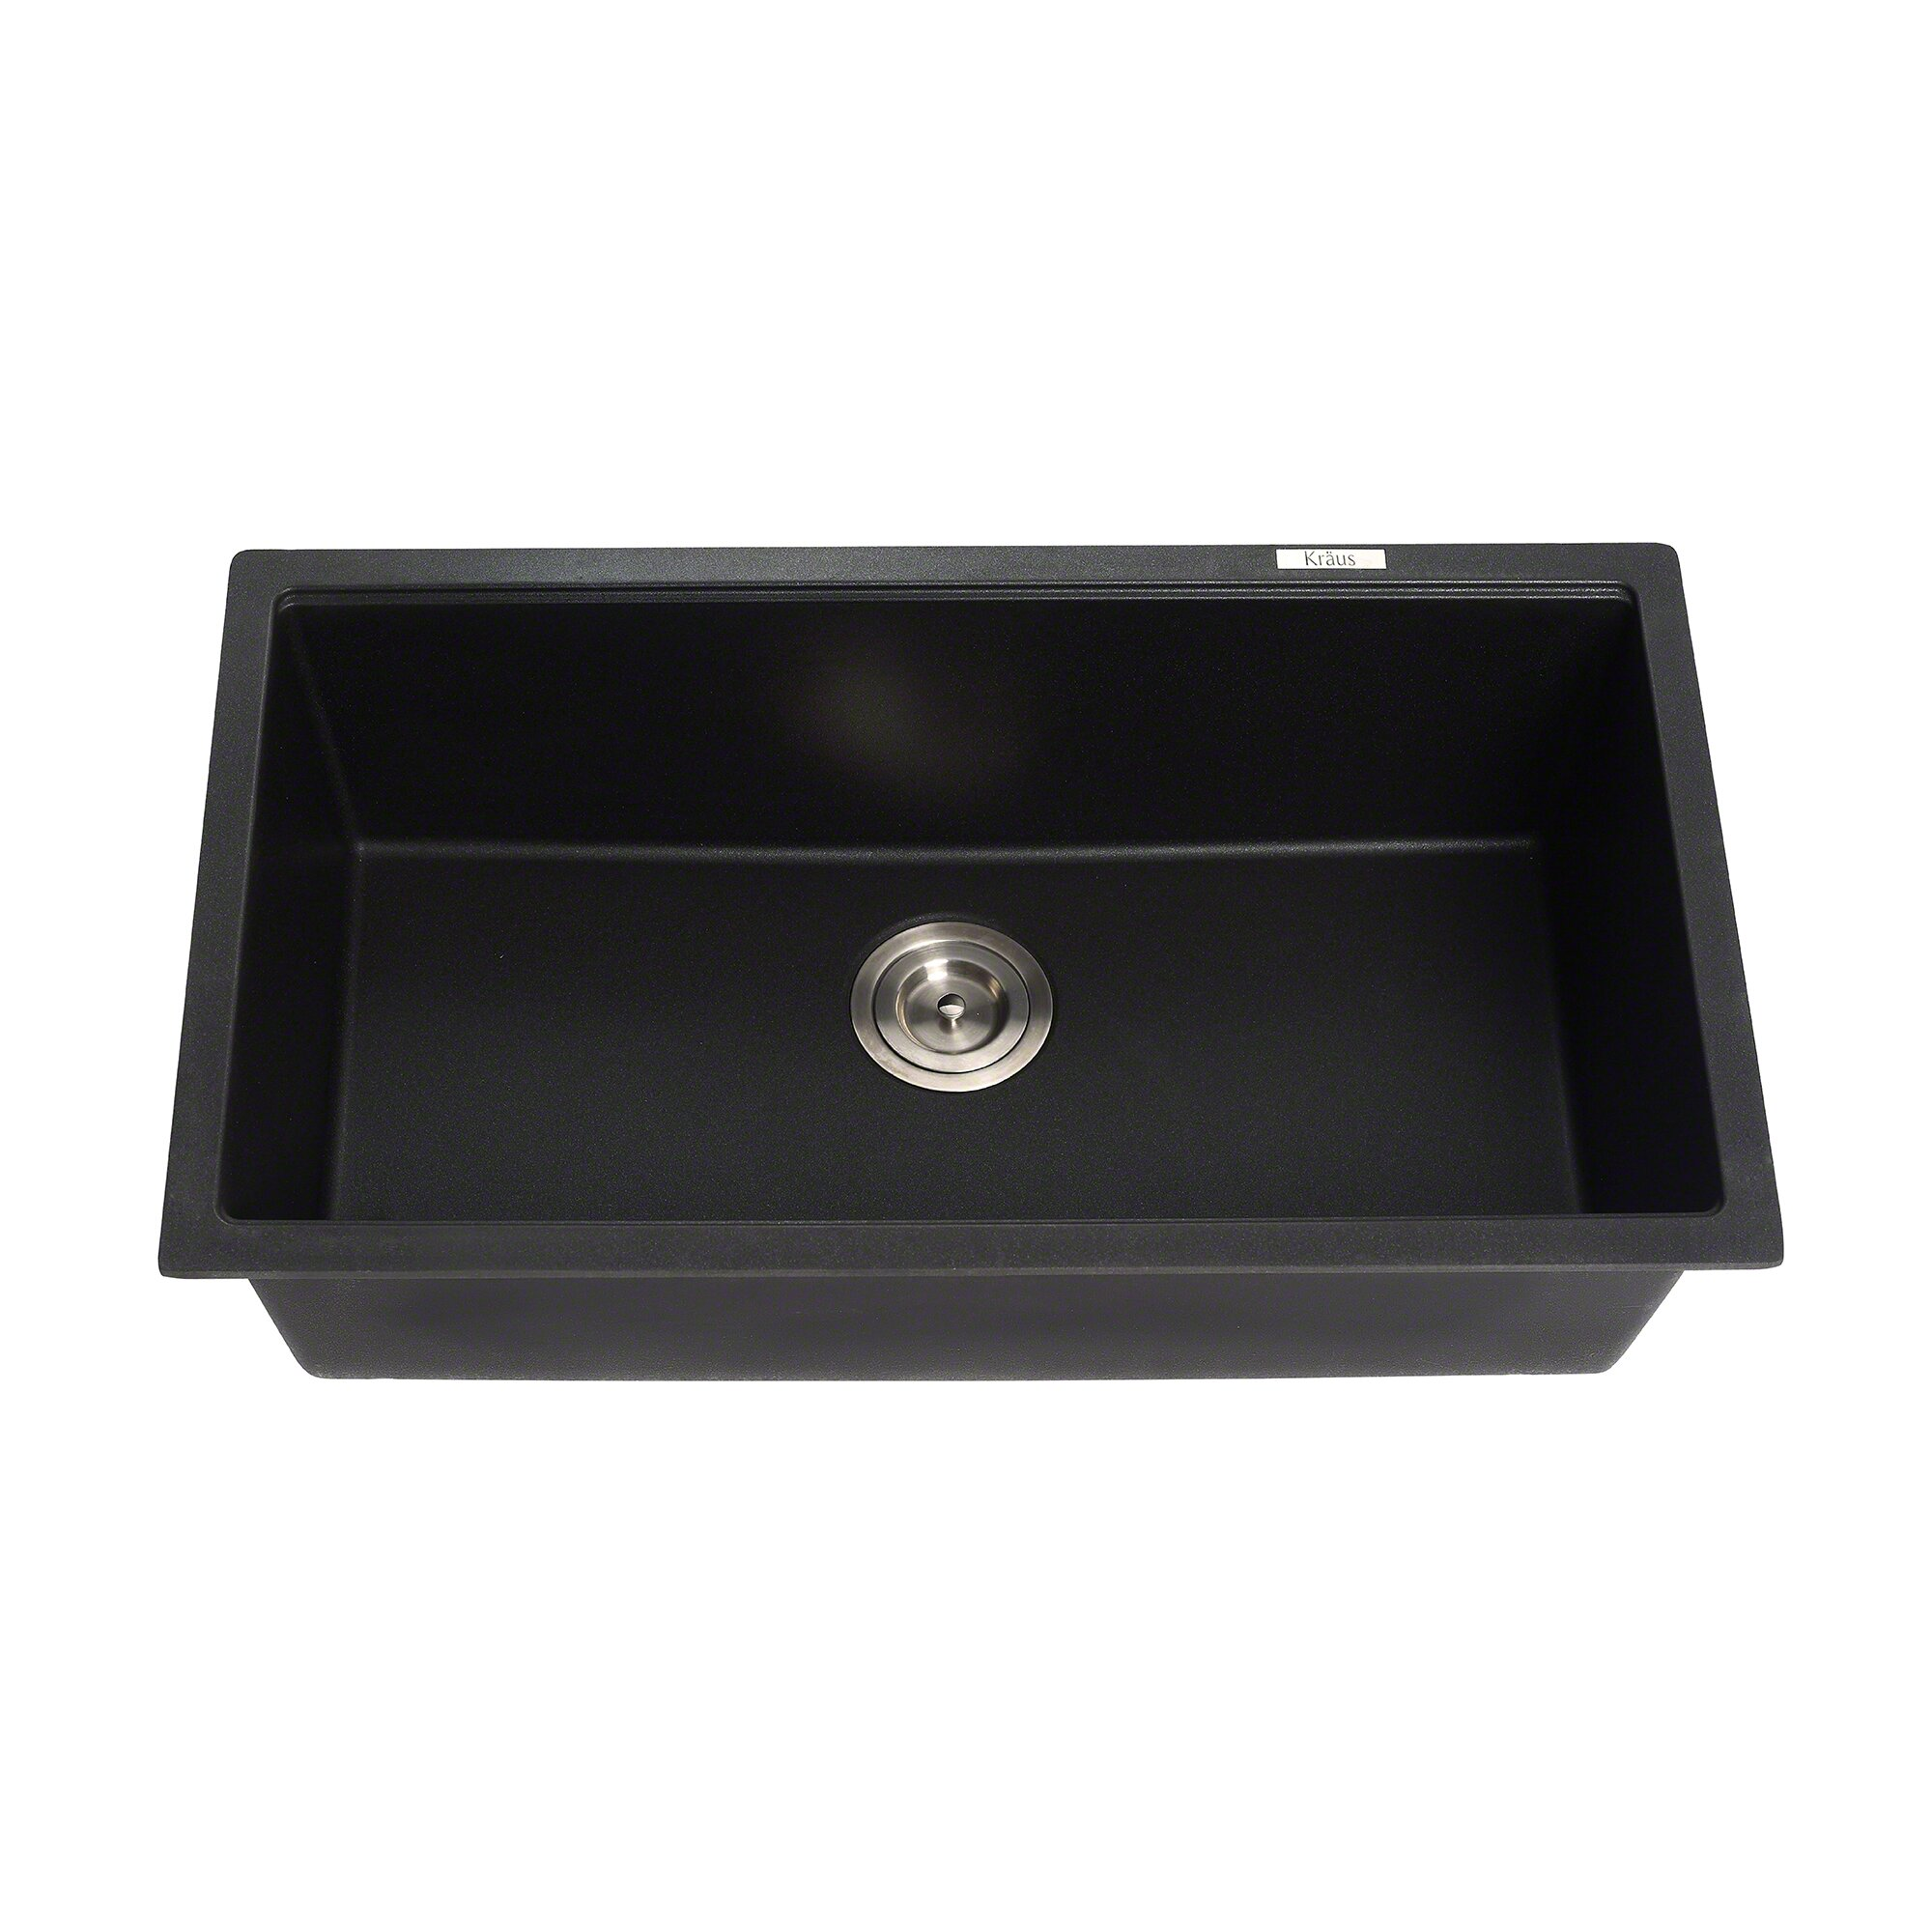 Undermount Granite Composite Kitchen Sinks Kraus 31 X 1709 Granite Undermount Kitchen Sink Reviews Wayfair